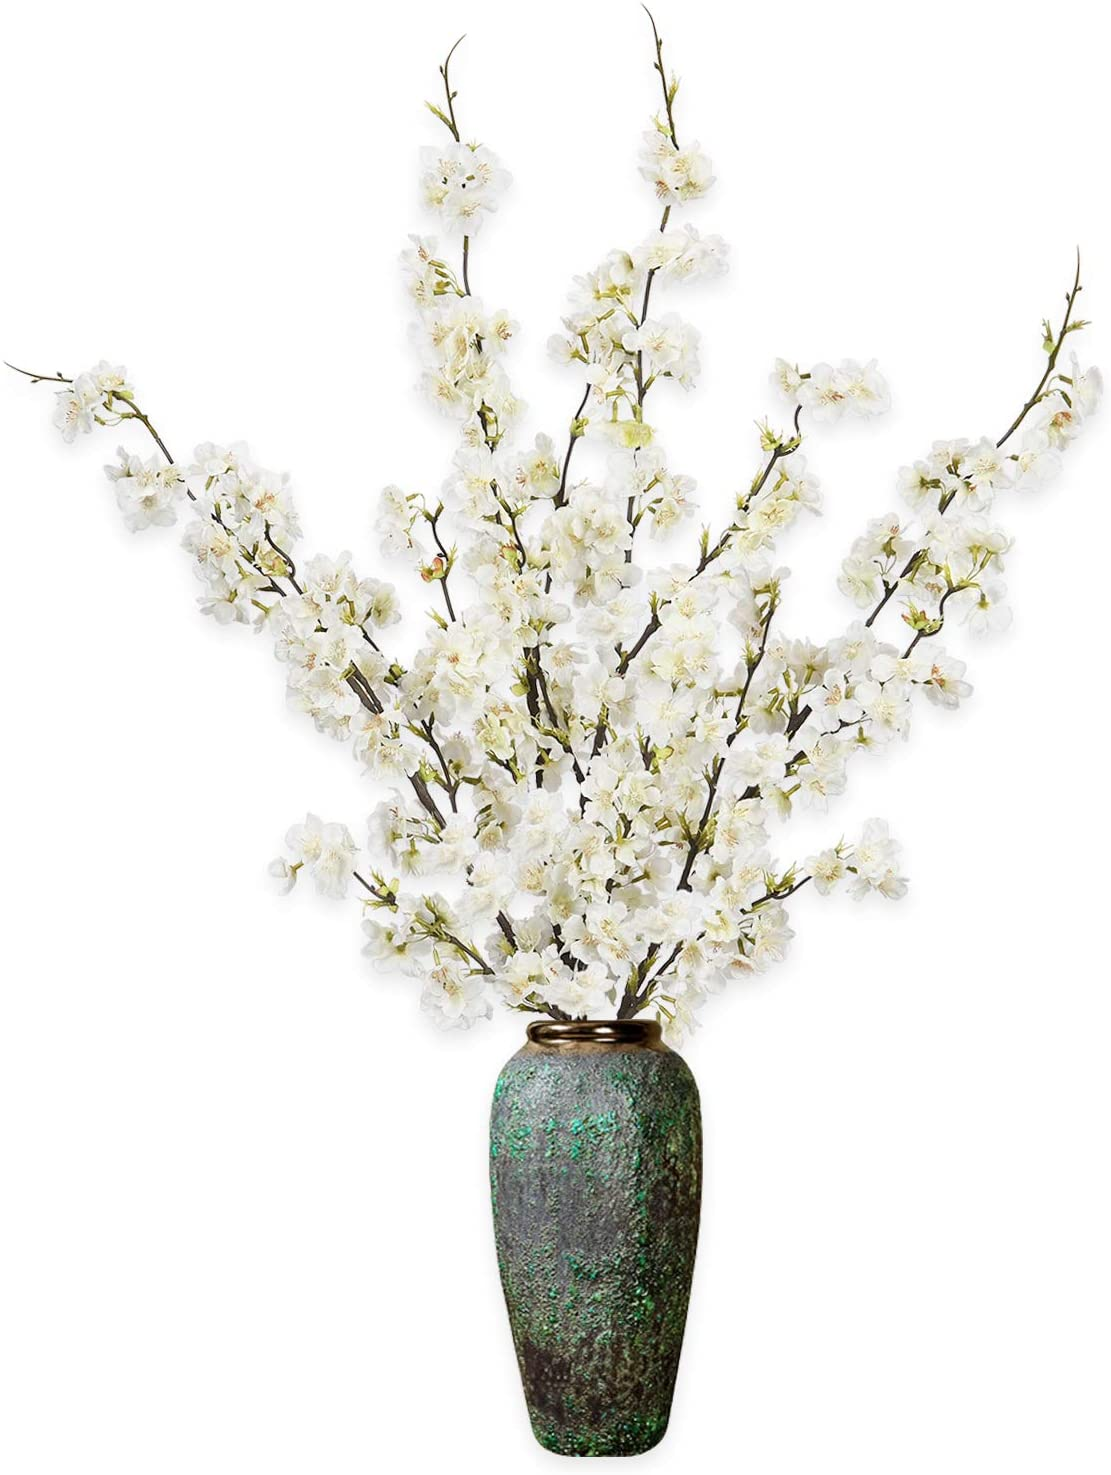 """Shiny Flower 4PCS Artificial Cherry Blossom Flowers, Silk Peach Flowers Arrangements Tall Artificial Plant 42.9"""" in Tall for Wedding Office Party Hotel Yard Home Decoration"""